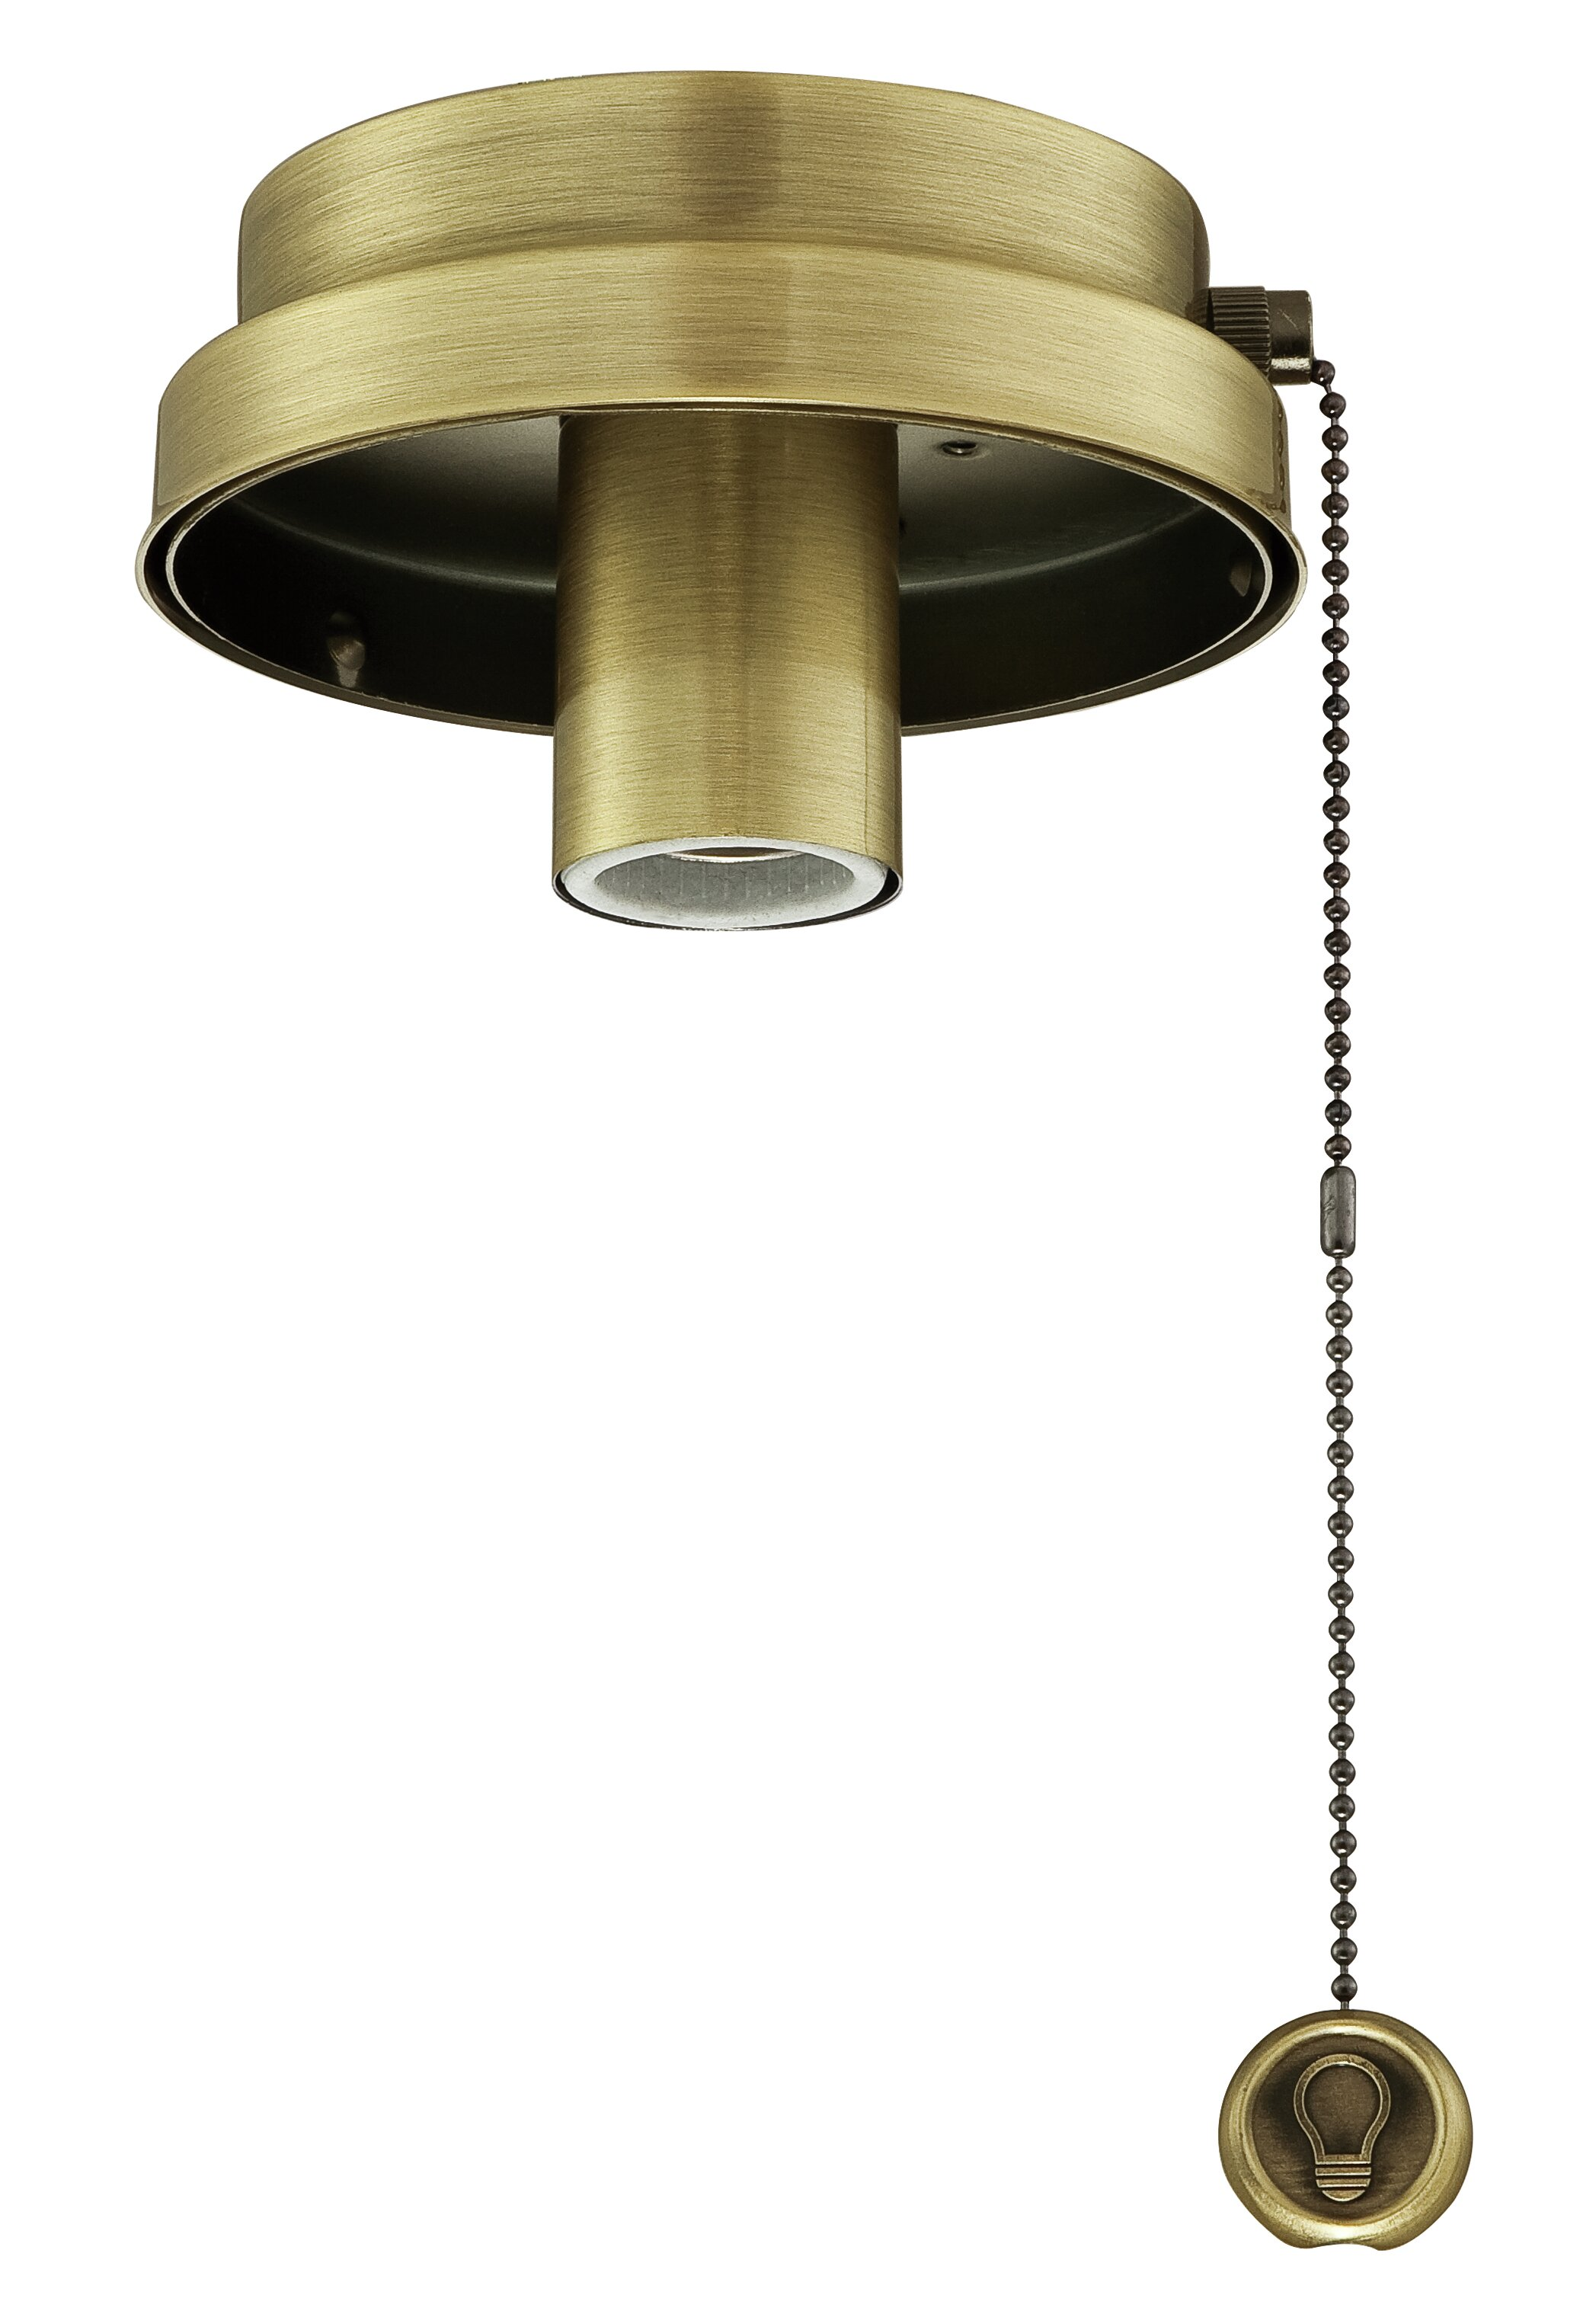 Fanimation Low Profile Pull Chain Operated 1 Light Led Ceiling Fan Light Fitter Wayfair Ca